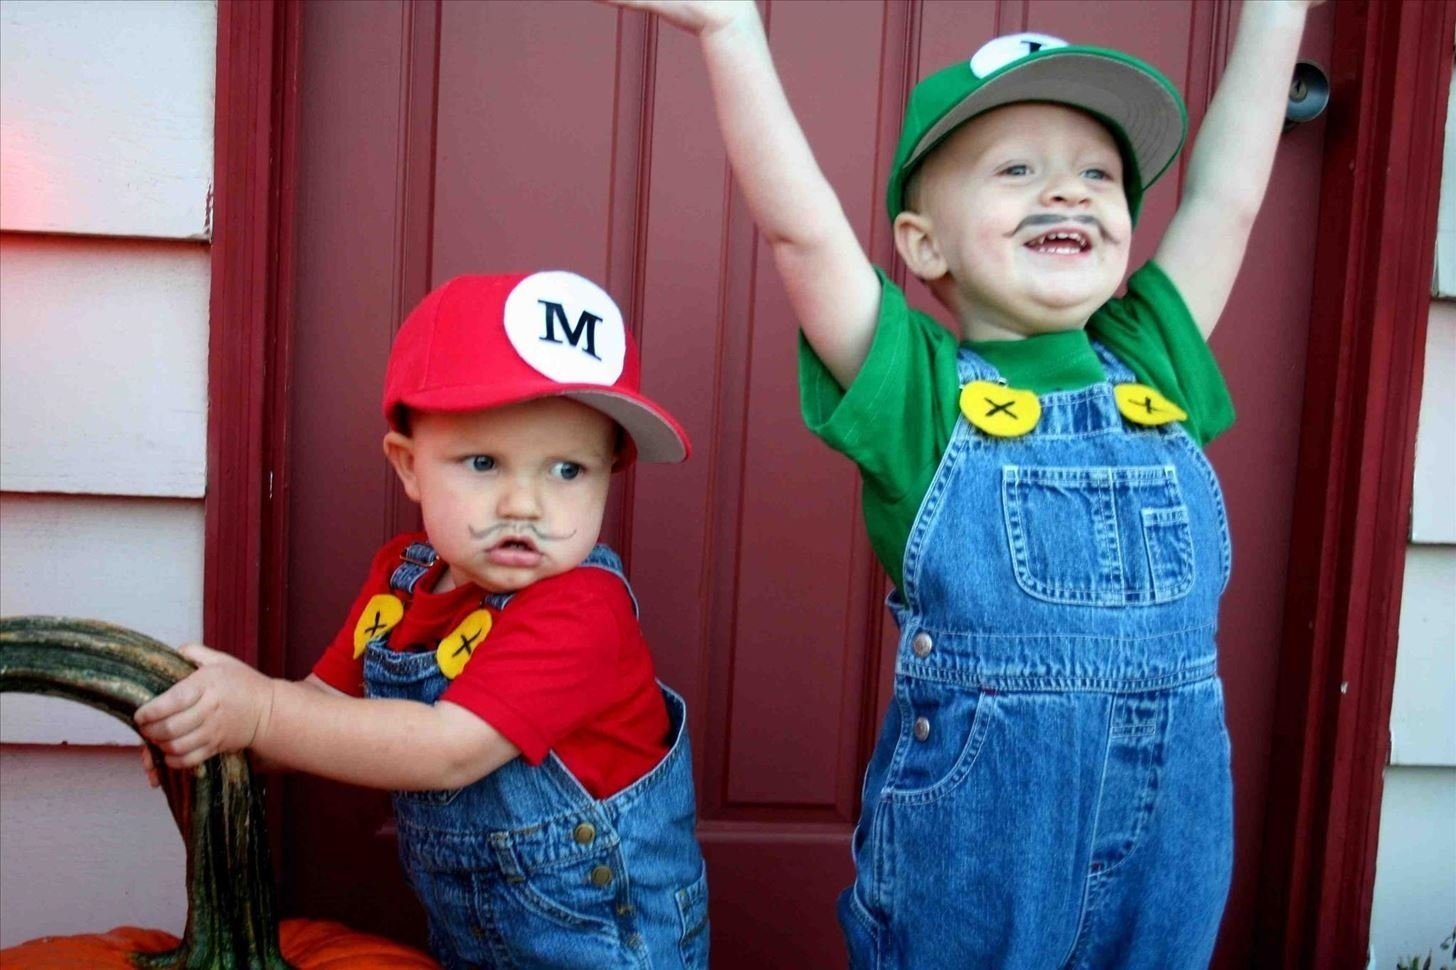 10 Lovable Boy Girl Halloween Costume Ideas 10 cheap easy awesome diy halloween costumes for kids 1 2021